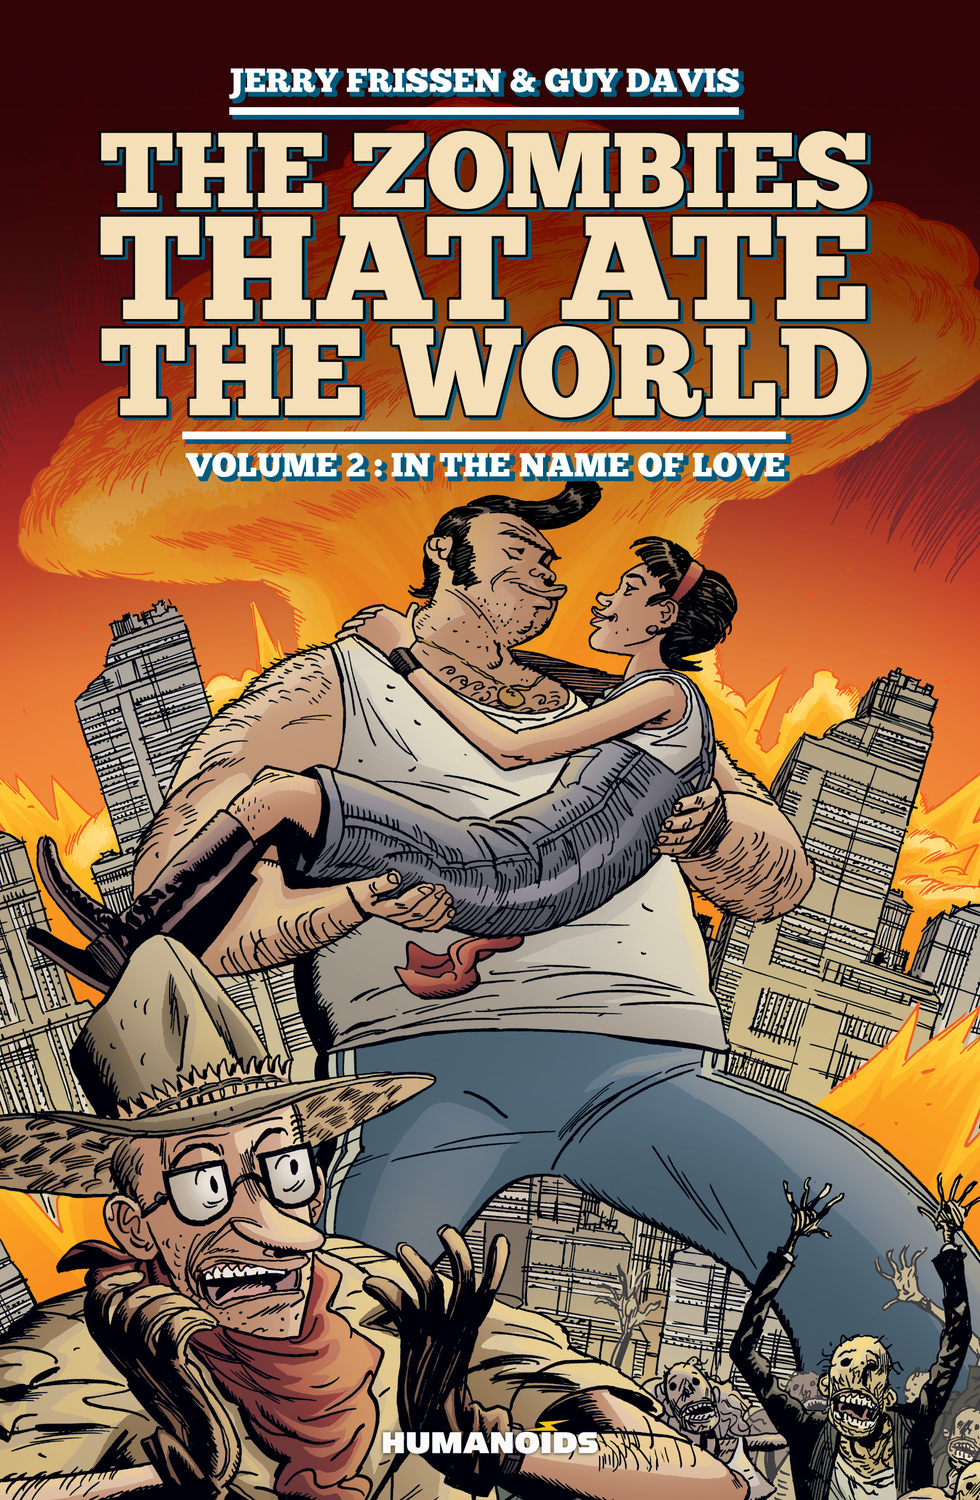 The Zombies that Ate the World #2 : In the name of love - Digital Comic